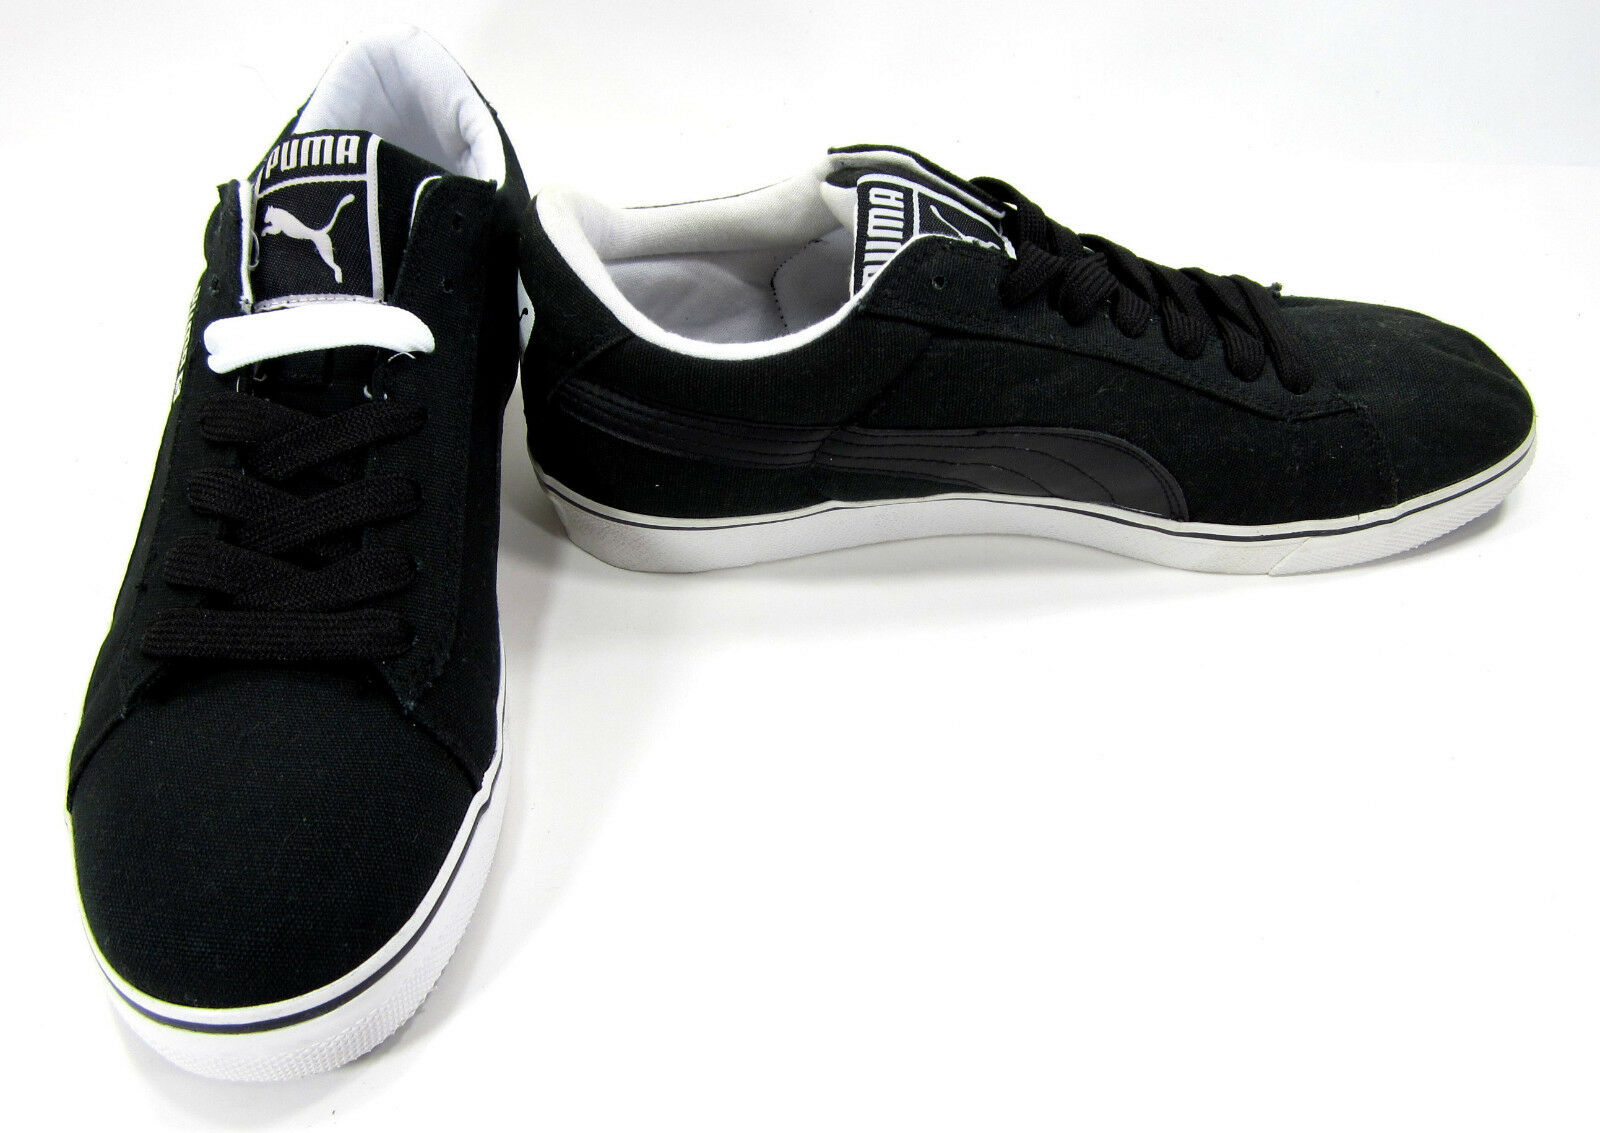 Puma shoes S Vulcan Canvas Black White Sneakers Size 11